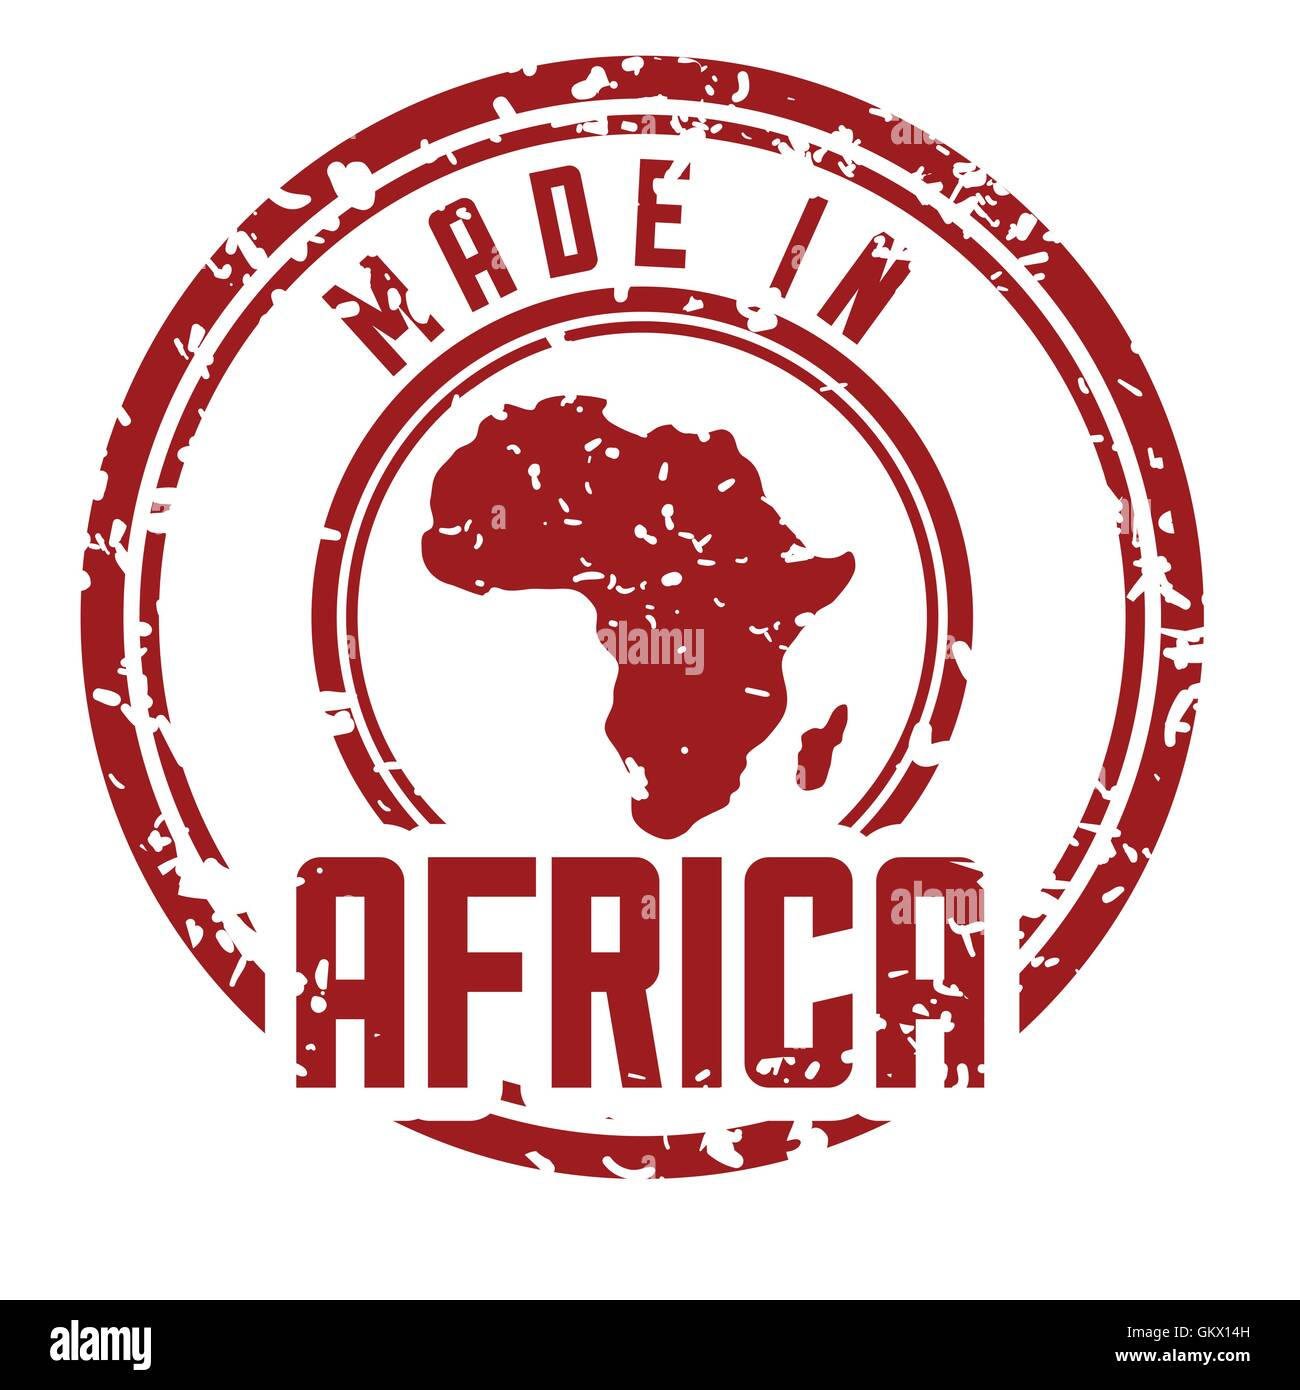 Africa design map shape icon grunge graphic vector Stock Vector